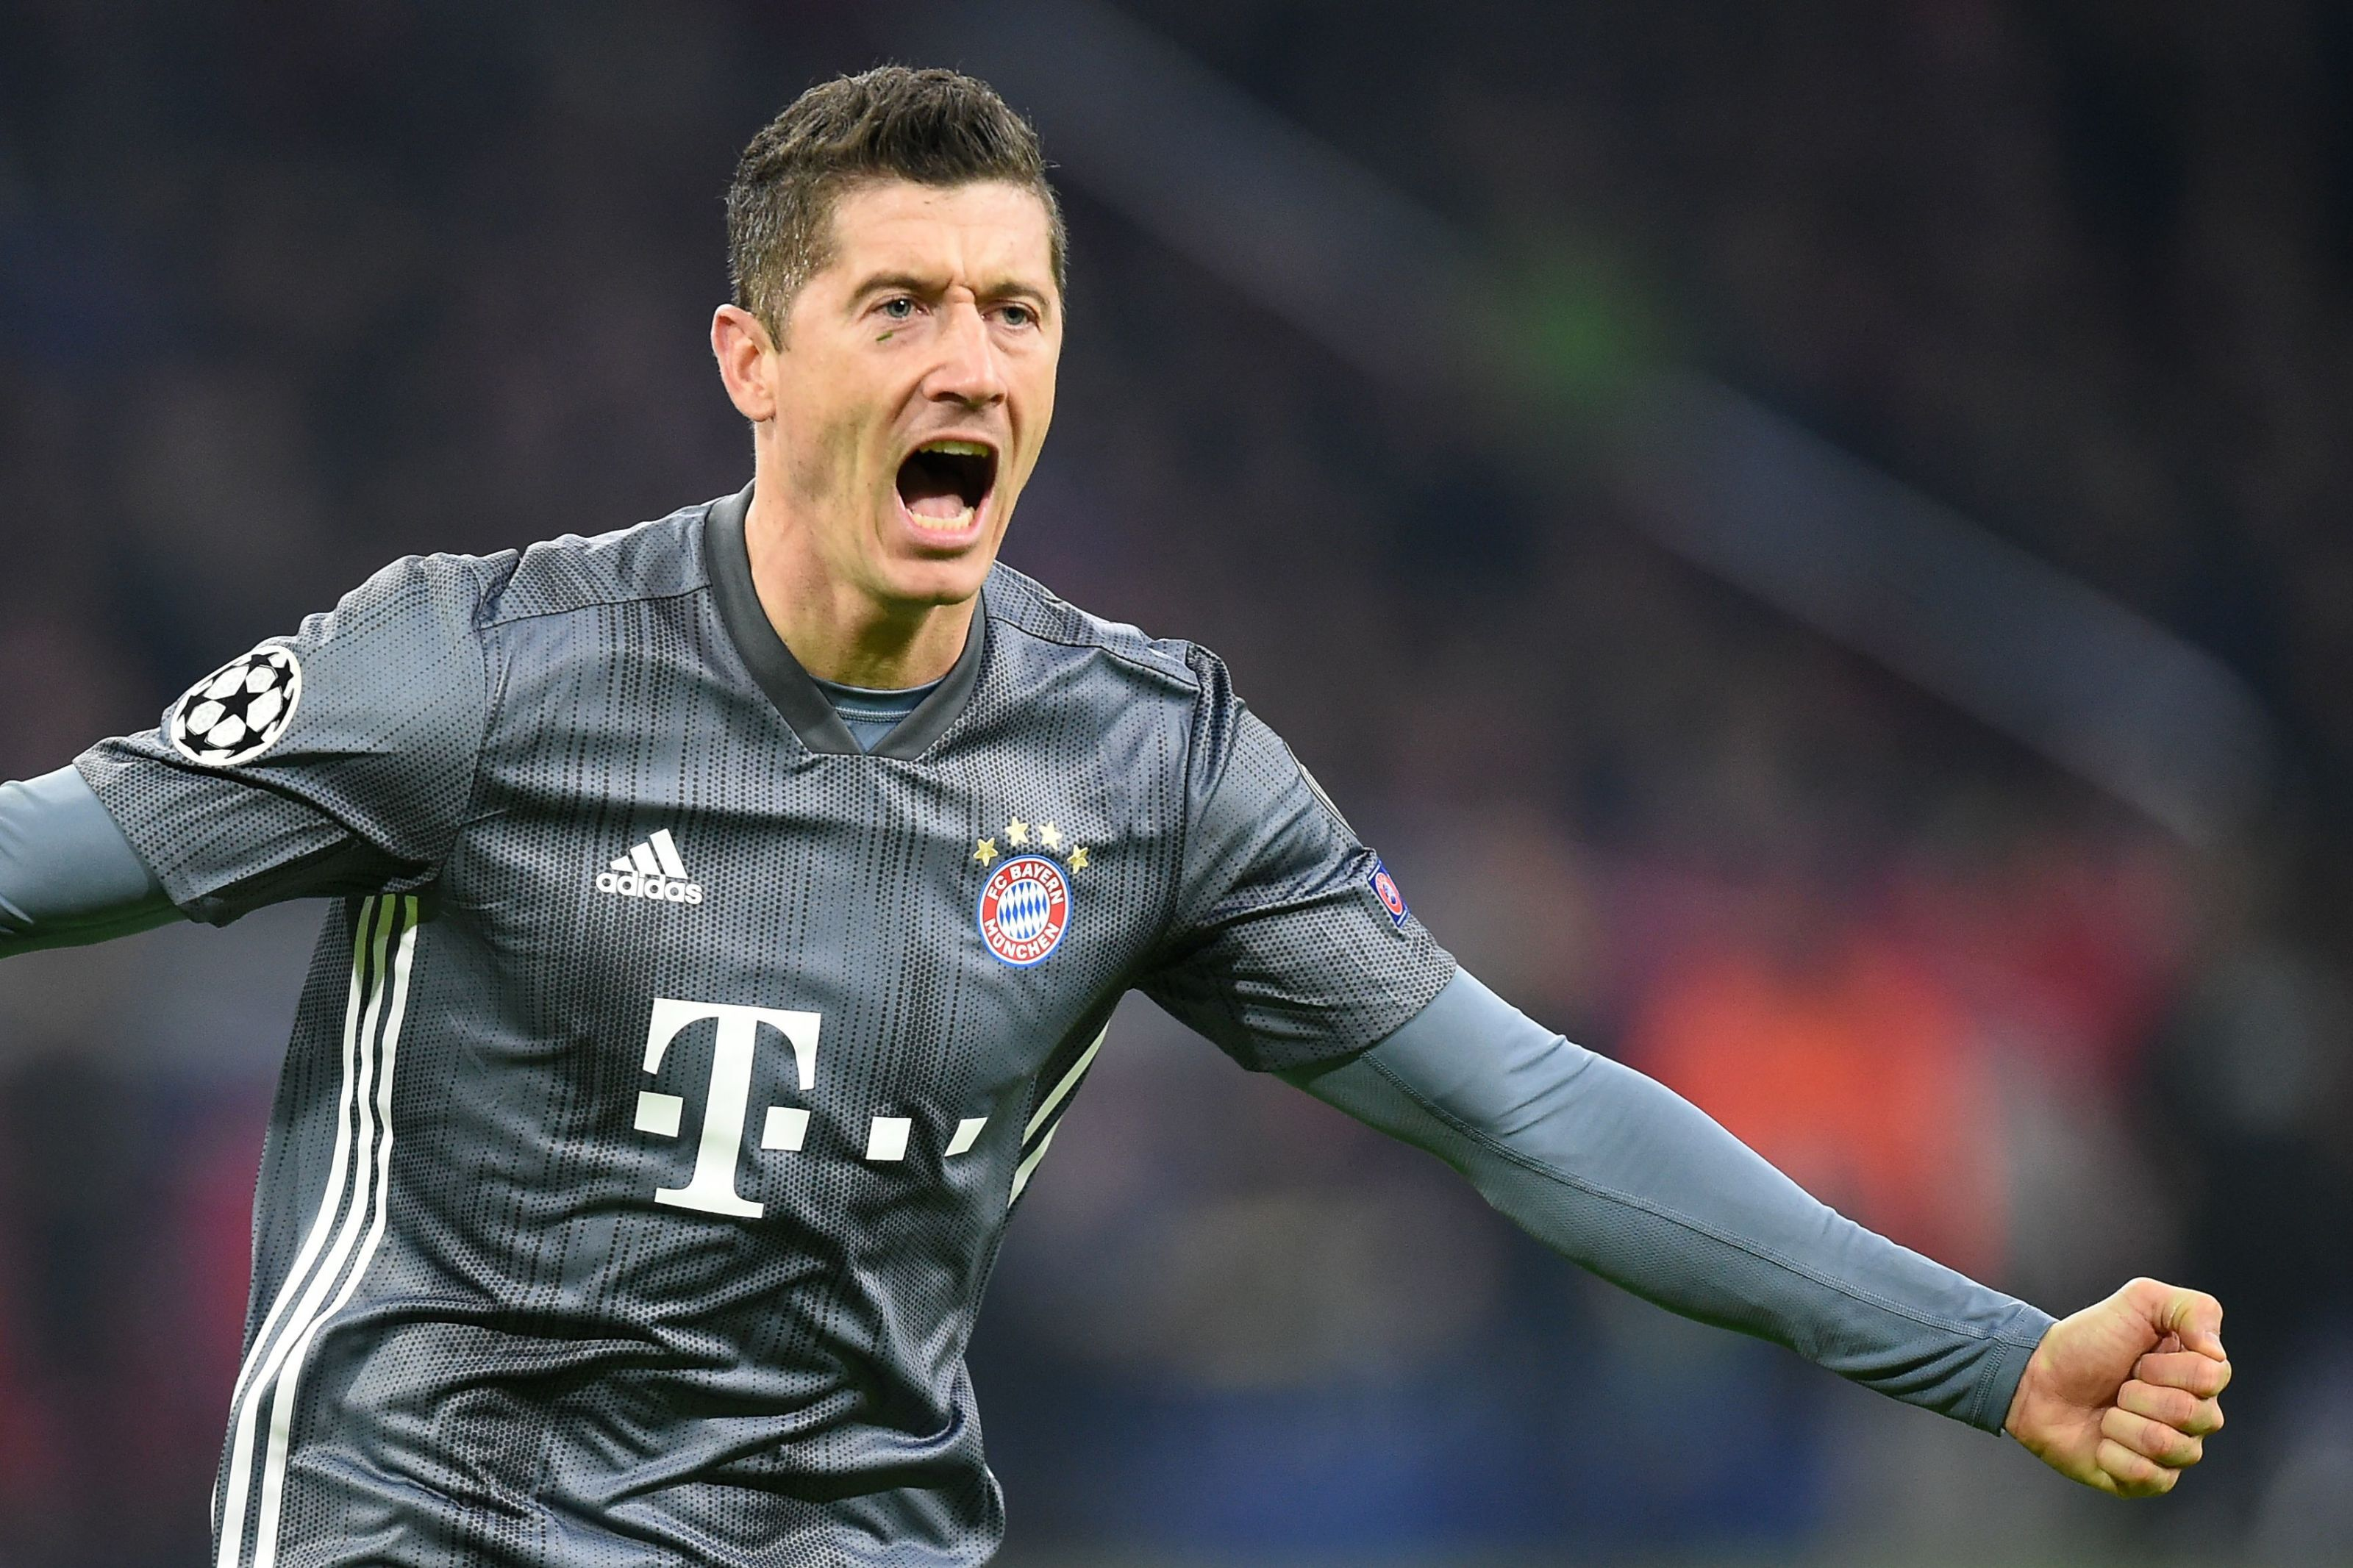 Bayern Munich's Polish forward Robert Lewandowski celebrates after scoring their second goal during the UEFA Champions League Group E football match between AFC Ajax and FC Bayern Munchen at the Johan Cruyff Arena in Amsterdam on December 12, 2018. (Photo by JOHN THYS / AFP) (Photo credit should read JOHN THYS/AFP/Getty Images)